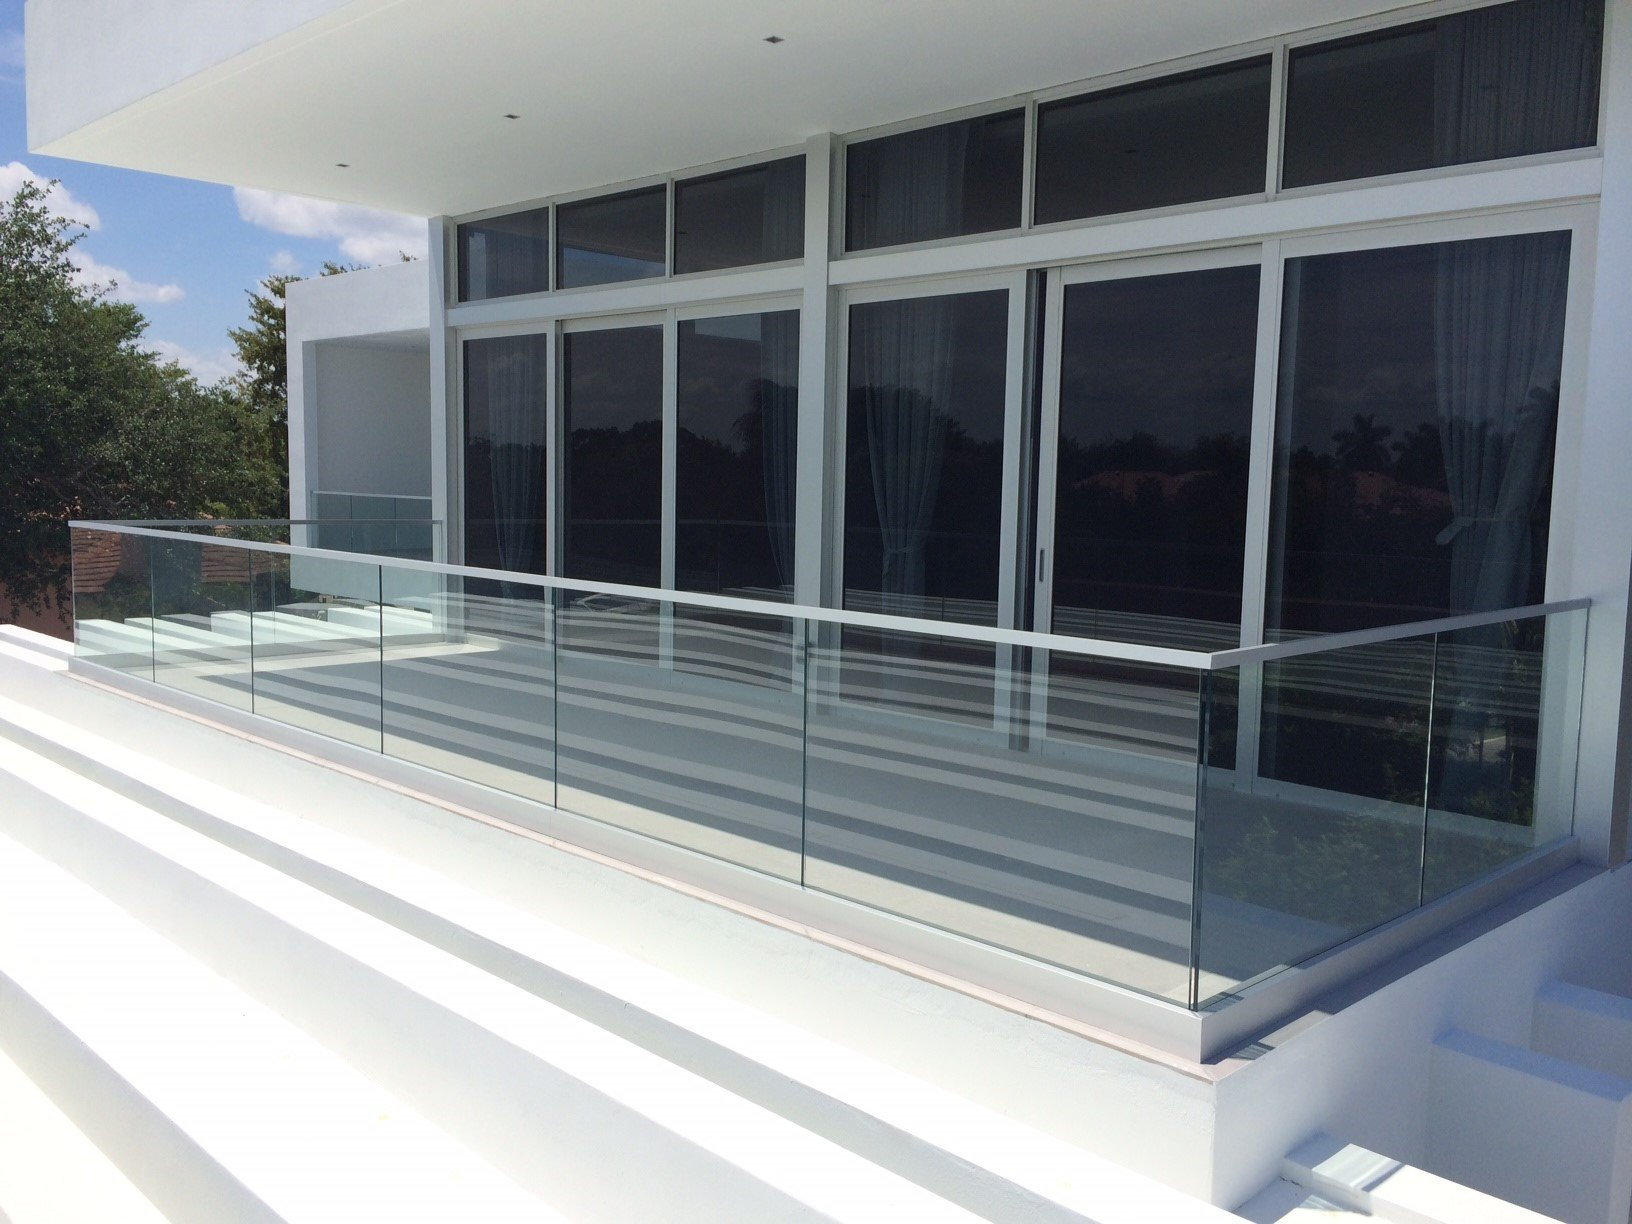 13-291 Los Pinos Circle Shop Dwgs Glass Railing Glass Railings of Miami Coral Gables 03